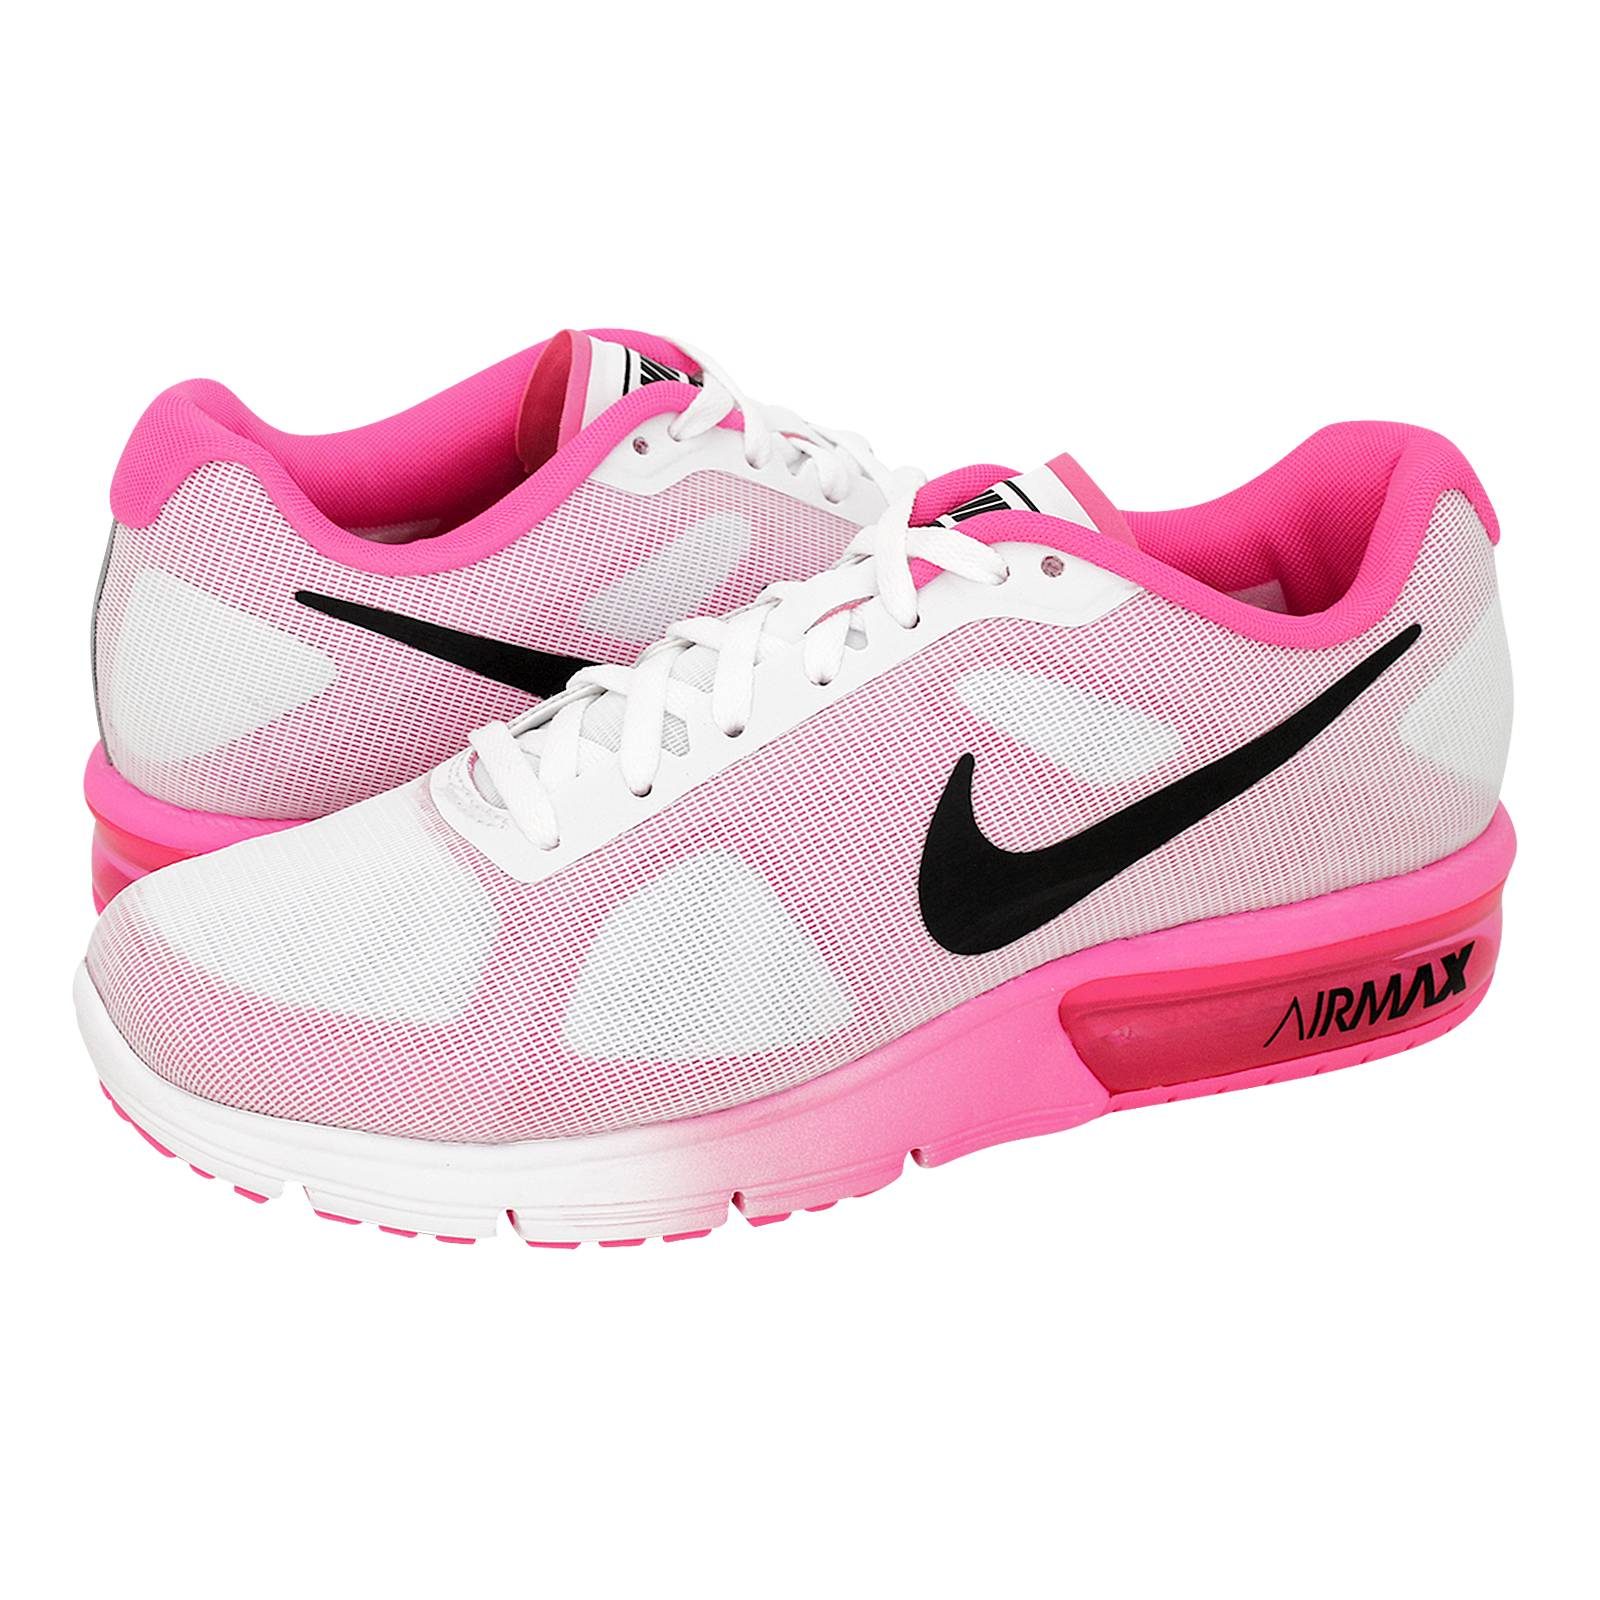 68a9c2dace1 Air Max Sequent - Γυναικεία αθλητικά παπούτσια Nike από υφασμα ...